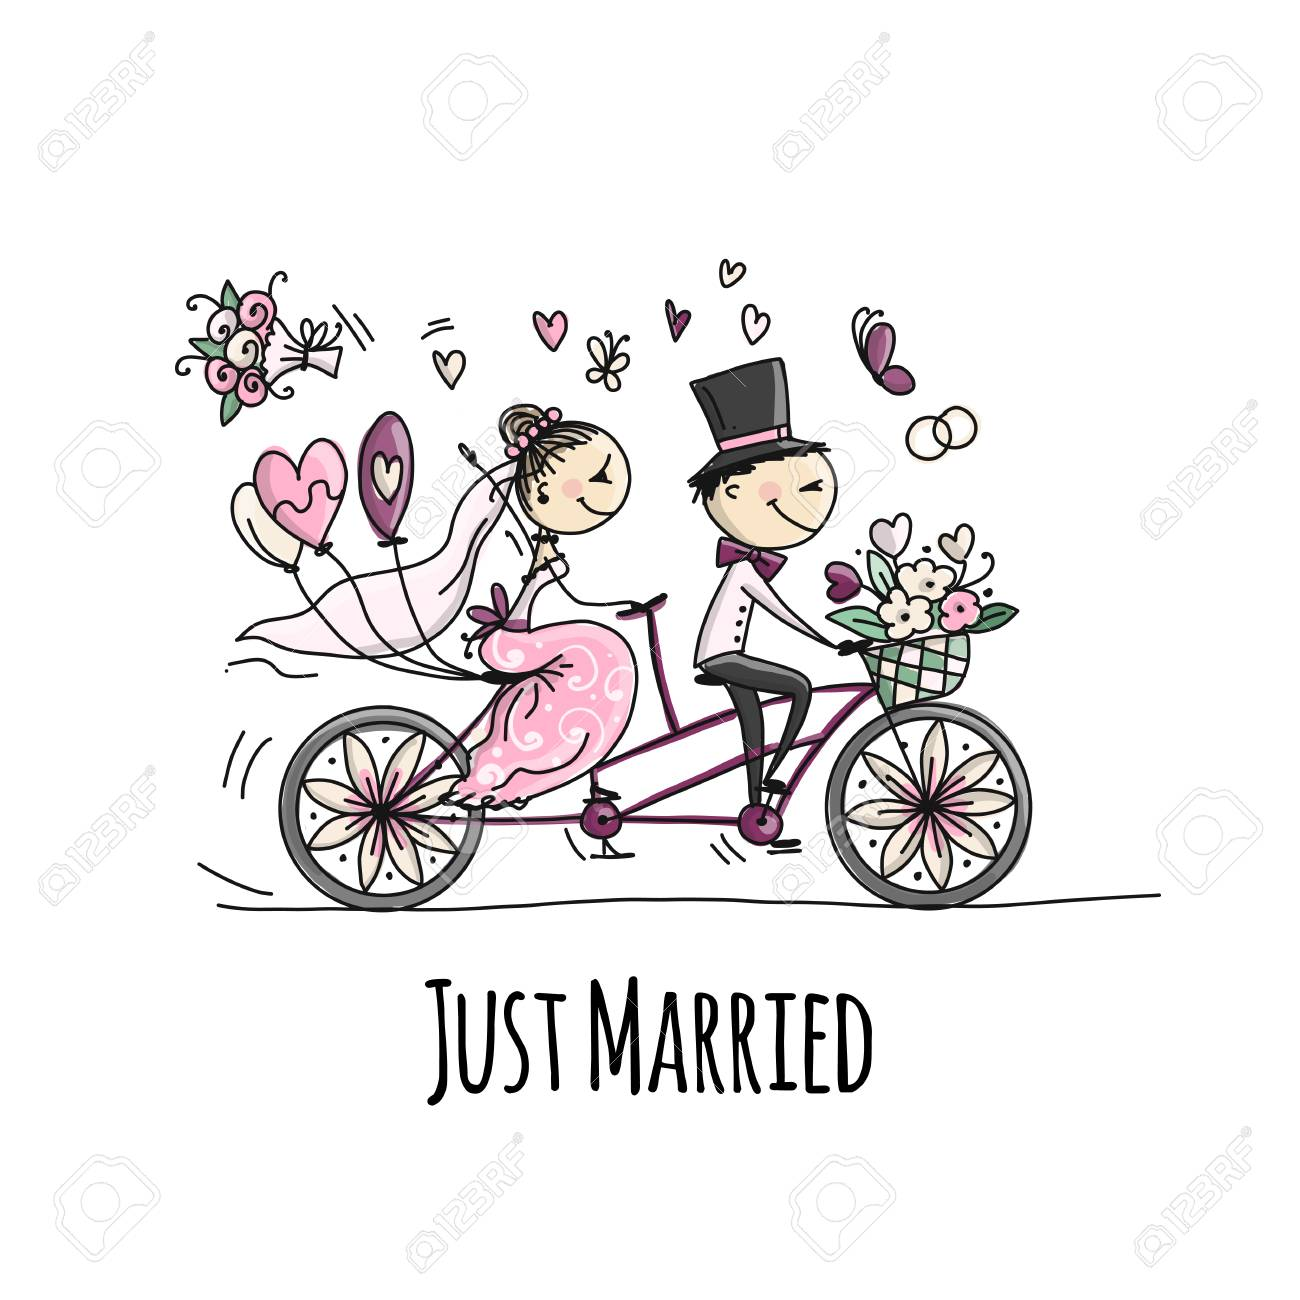 Wedding card design. Bride and groom riding on bicycle - 108223991